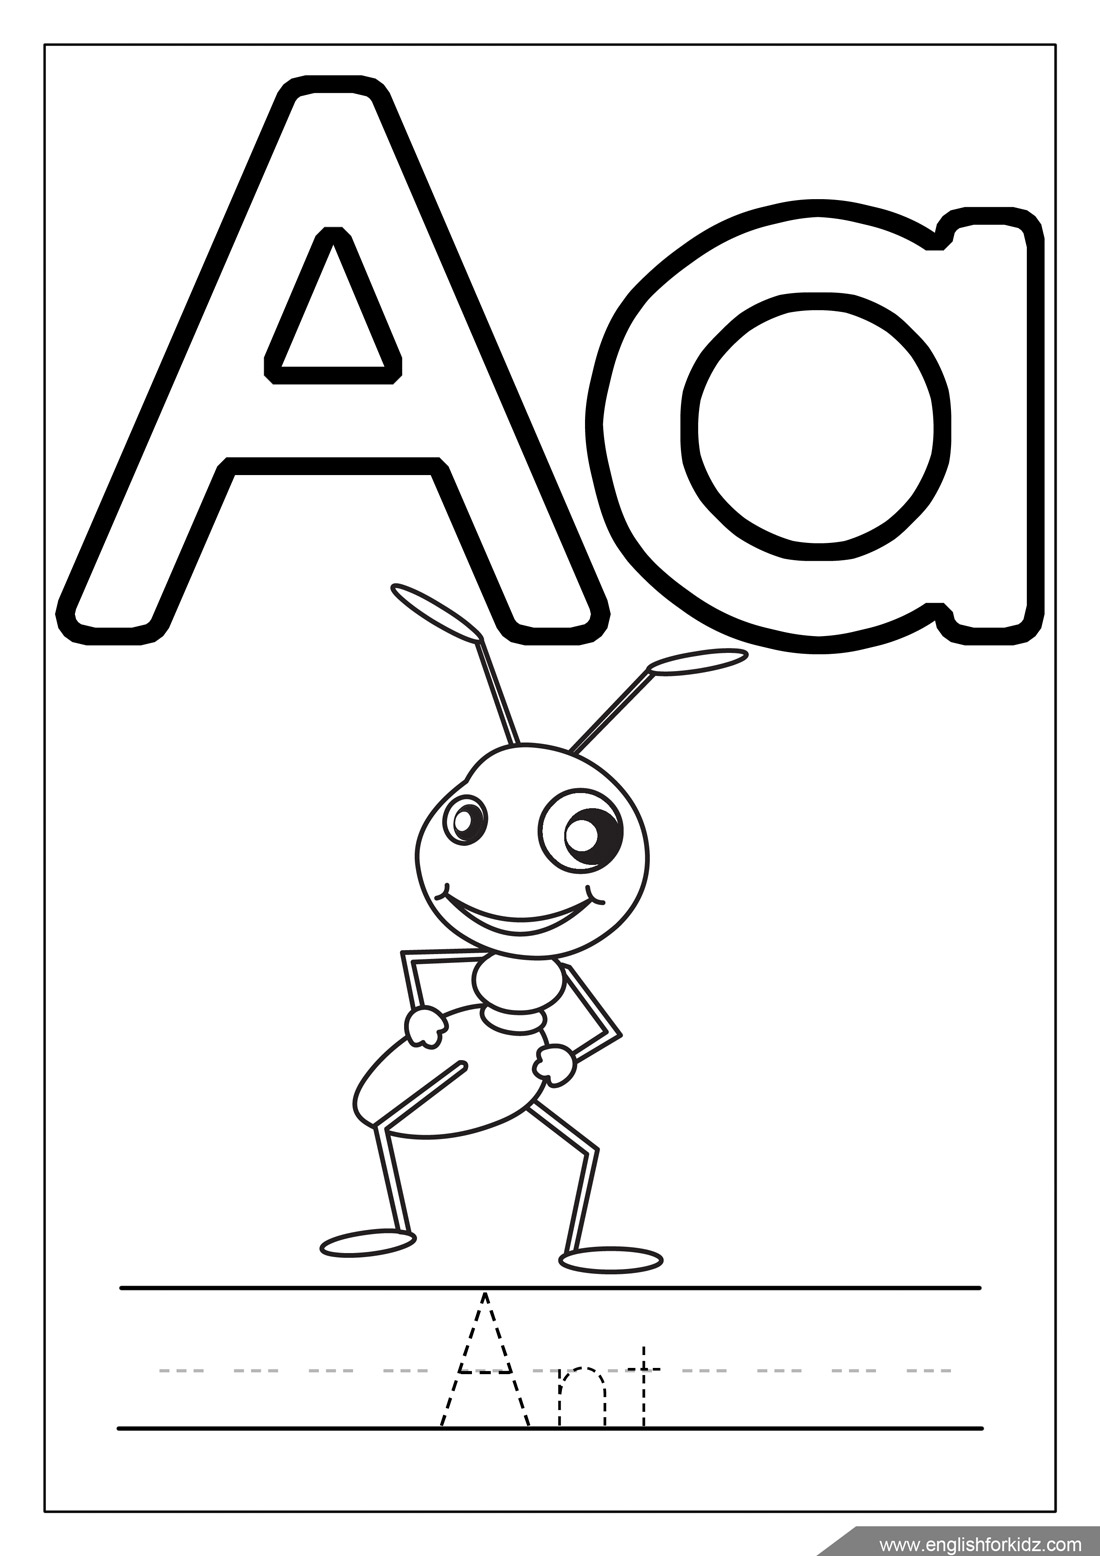 coloring book alphabet english for kids step by step printable alphabet coloring alphabet book coloring